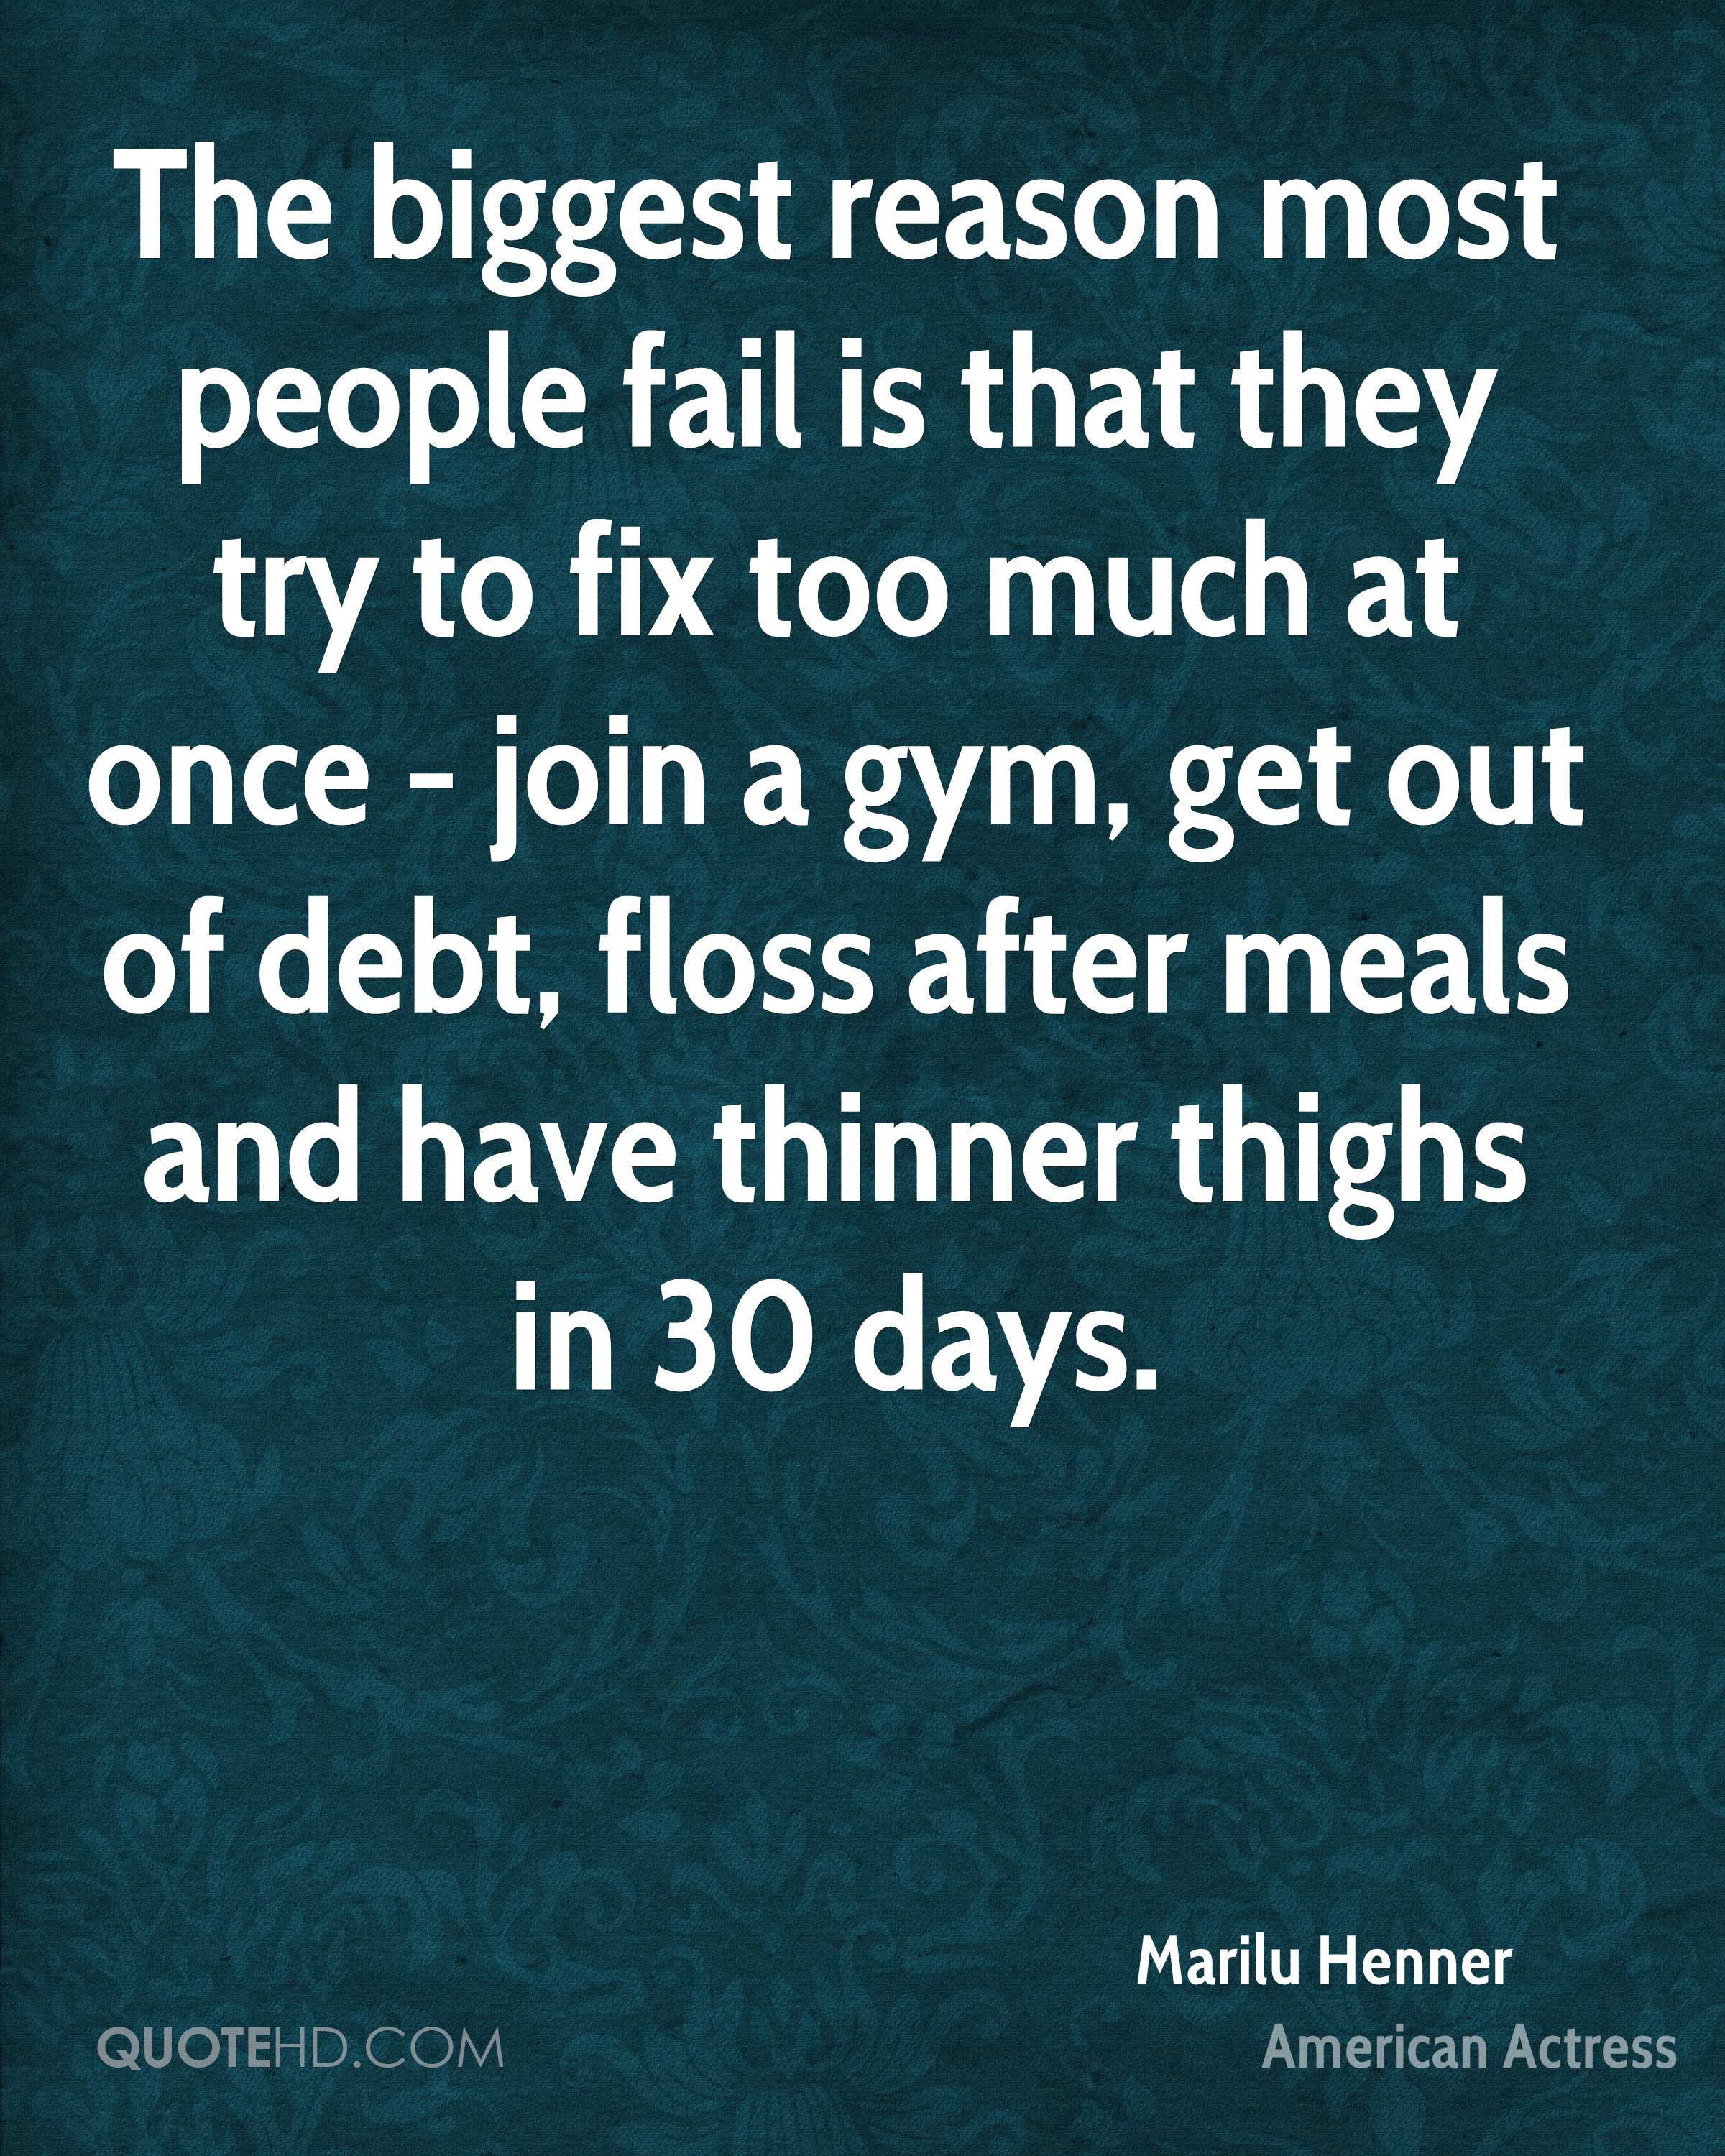 The biggest reason most people fail is that they try to fix too much at once - join a gym, get out of debt, floss after meals and have thinner thighs in 30 days.